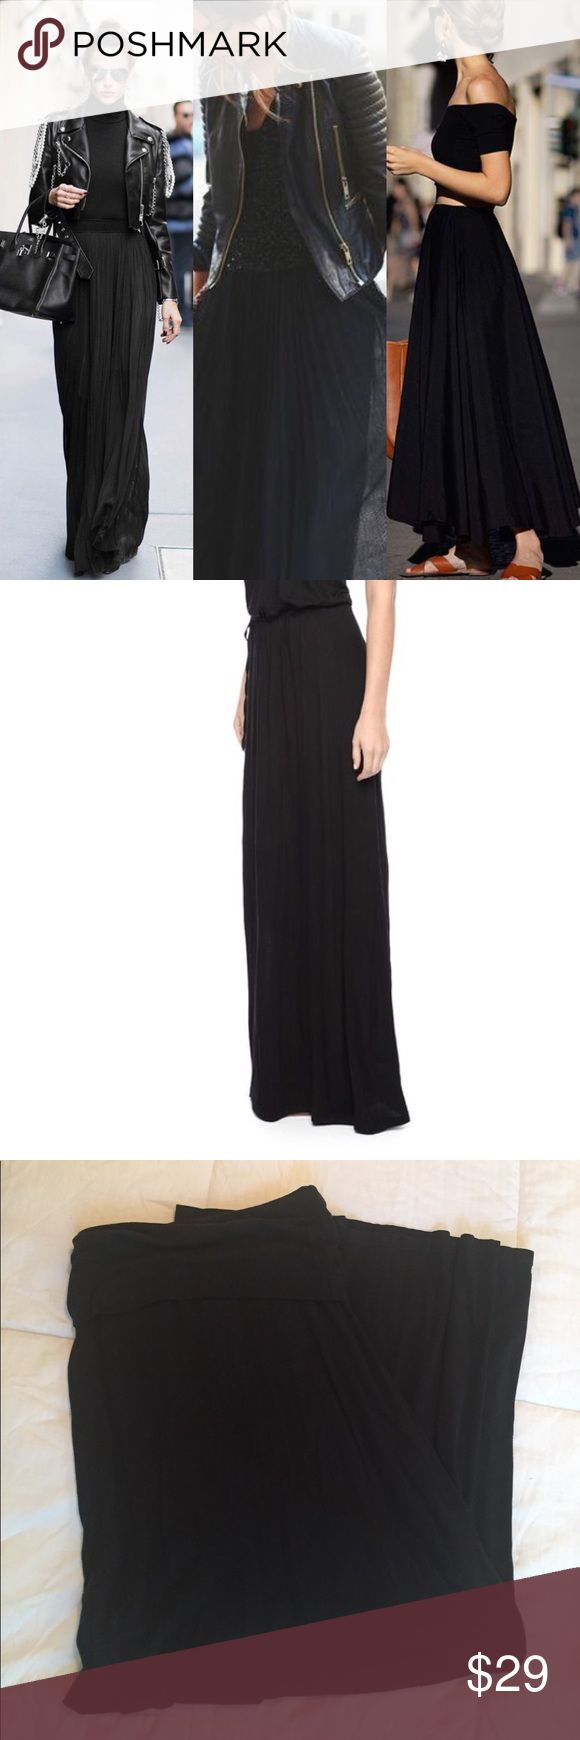 """Black jersey maxi skirt by Splendid size xs Black jersey maxi skirt by Splendid size xs. In excellent used condition cotton jersey material with the perfect amount of stretch. Comfy style to dress up or down. Waist can be folded down or worn high waisted. No side slit. This is too long for me so I'm selling. Length from waist to hem is 43"""" Splendid Skirts Maxi"""